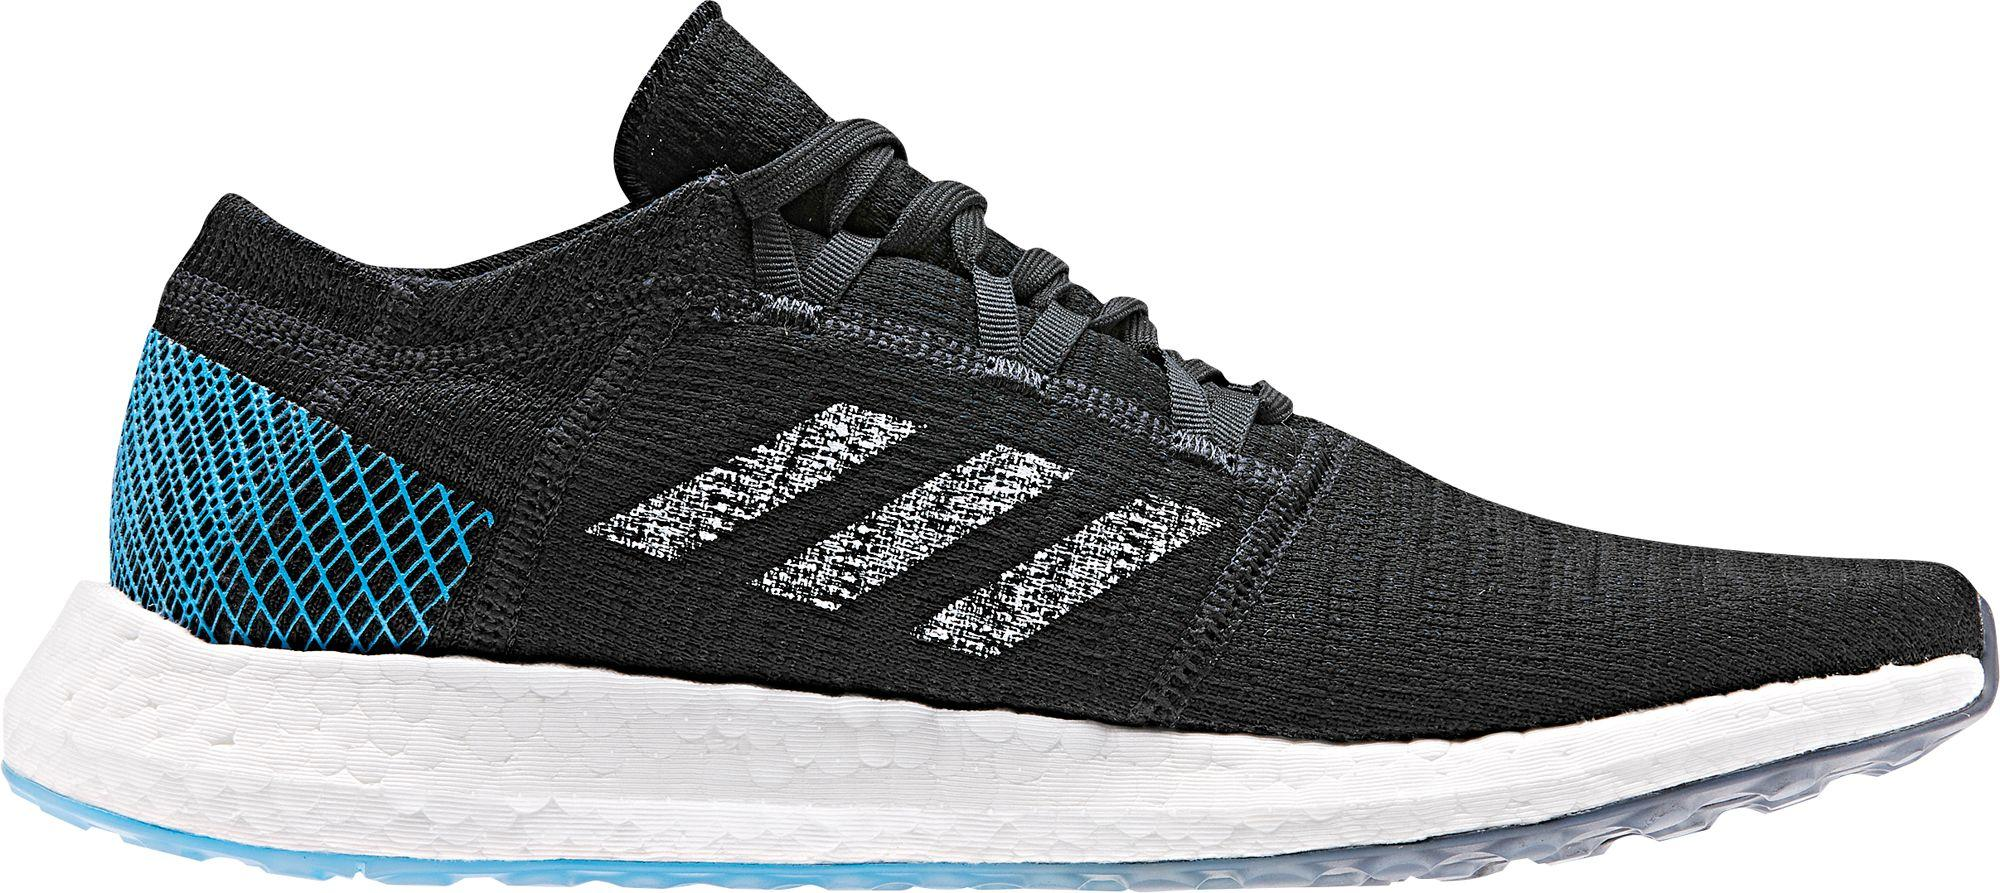 777479ffc Lyst - adidas Pureboost Go Running Shoes in Blue for Men